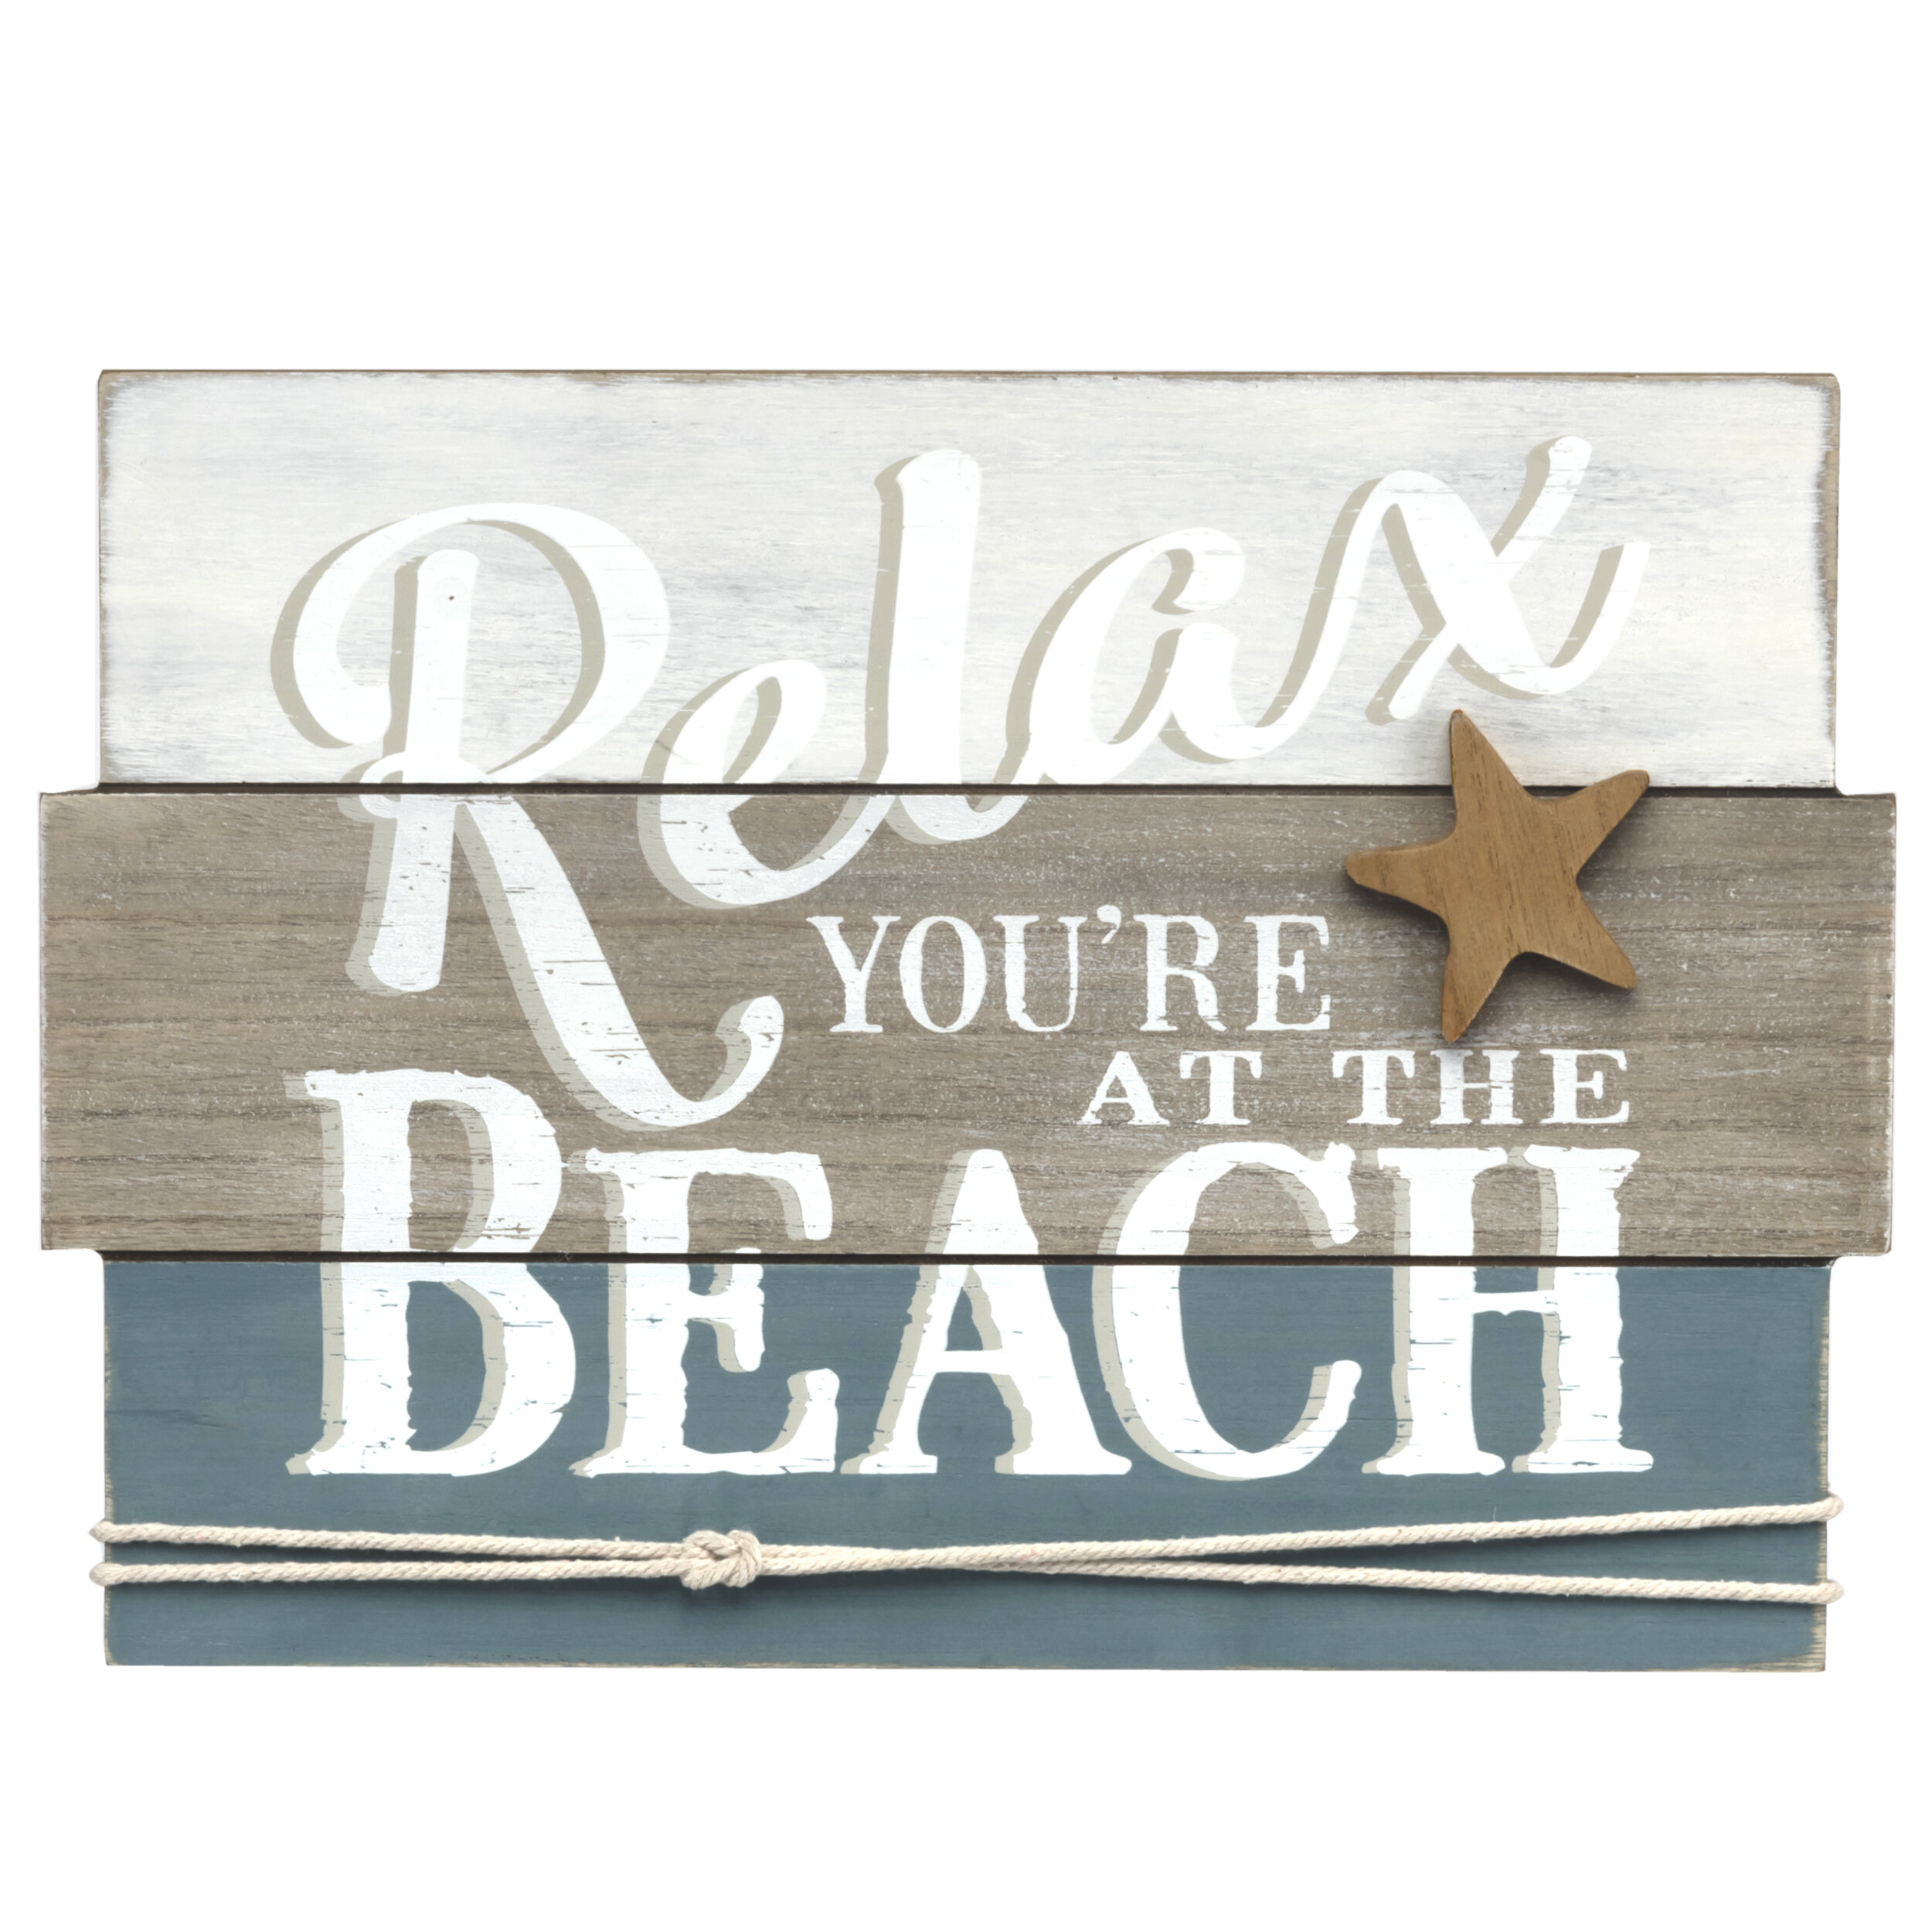 Graham Dunn Relax Weathered Look 5 x 10 Wood Plank Design Hanging Sign P